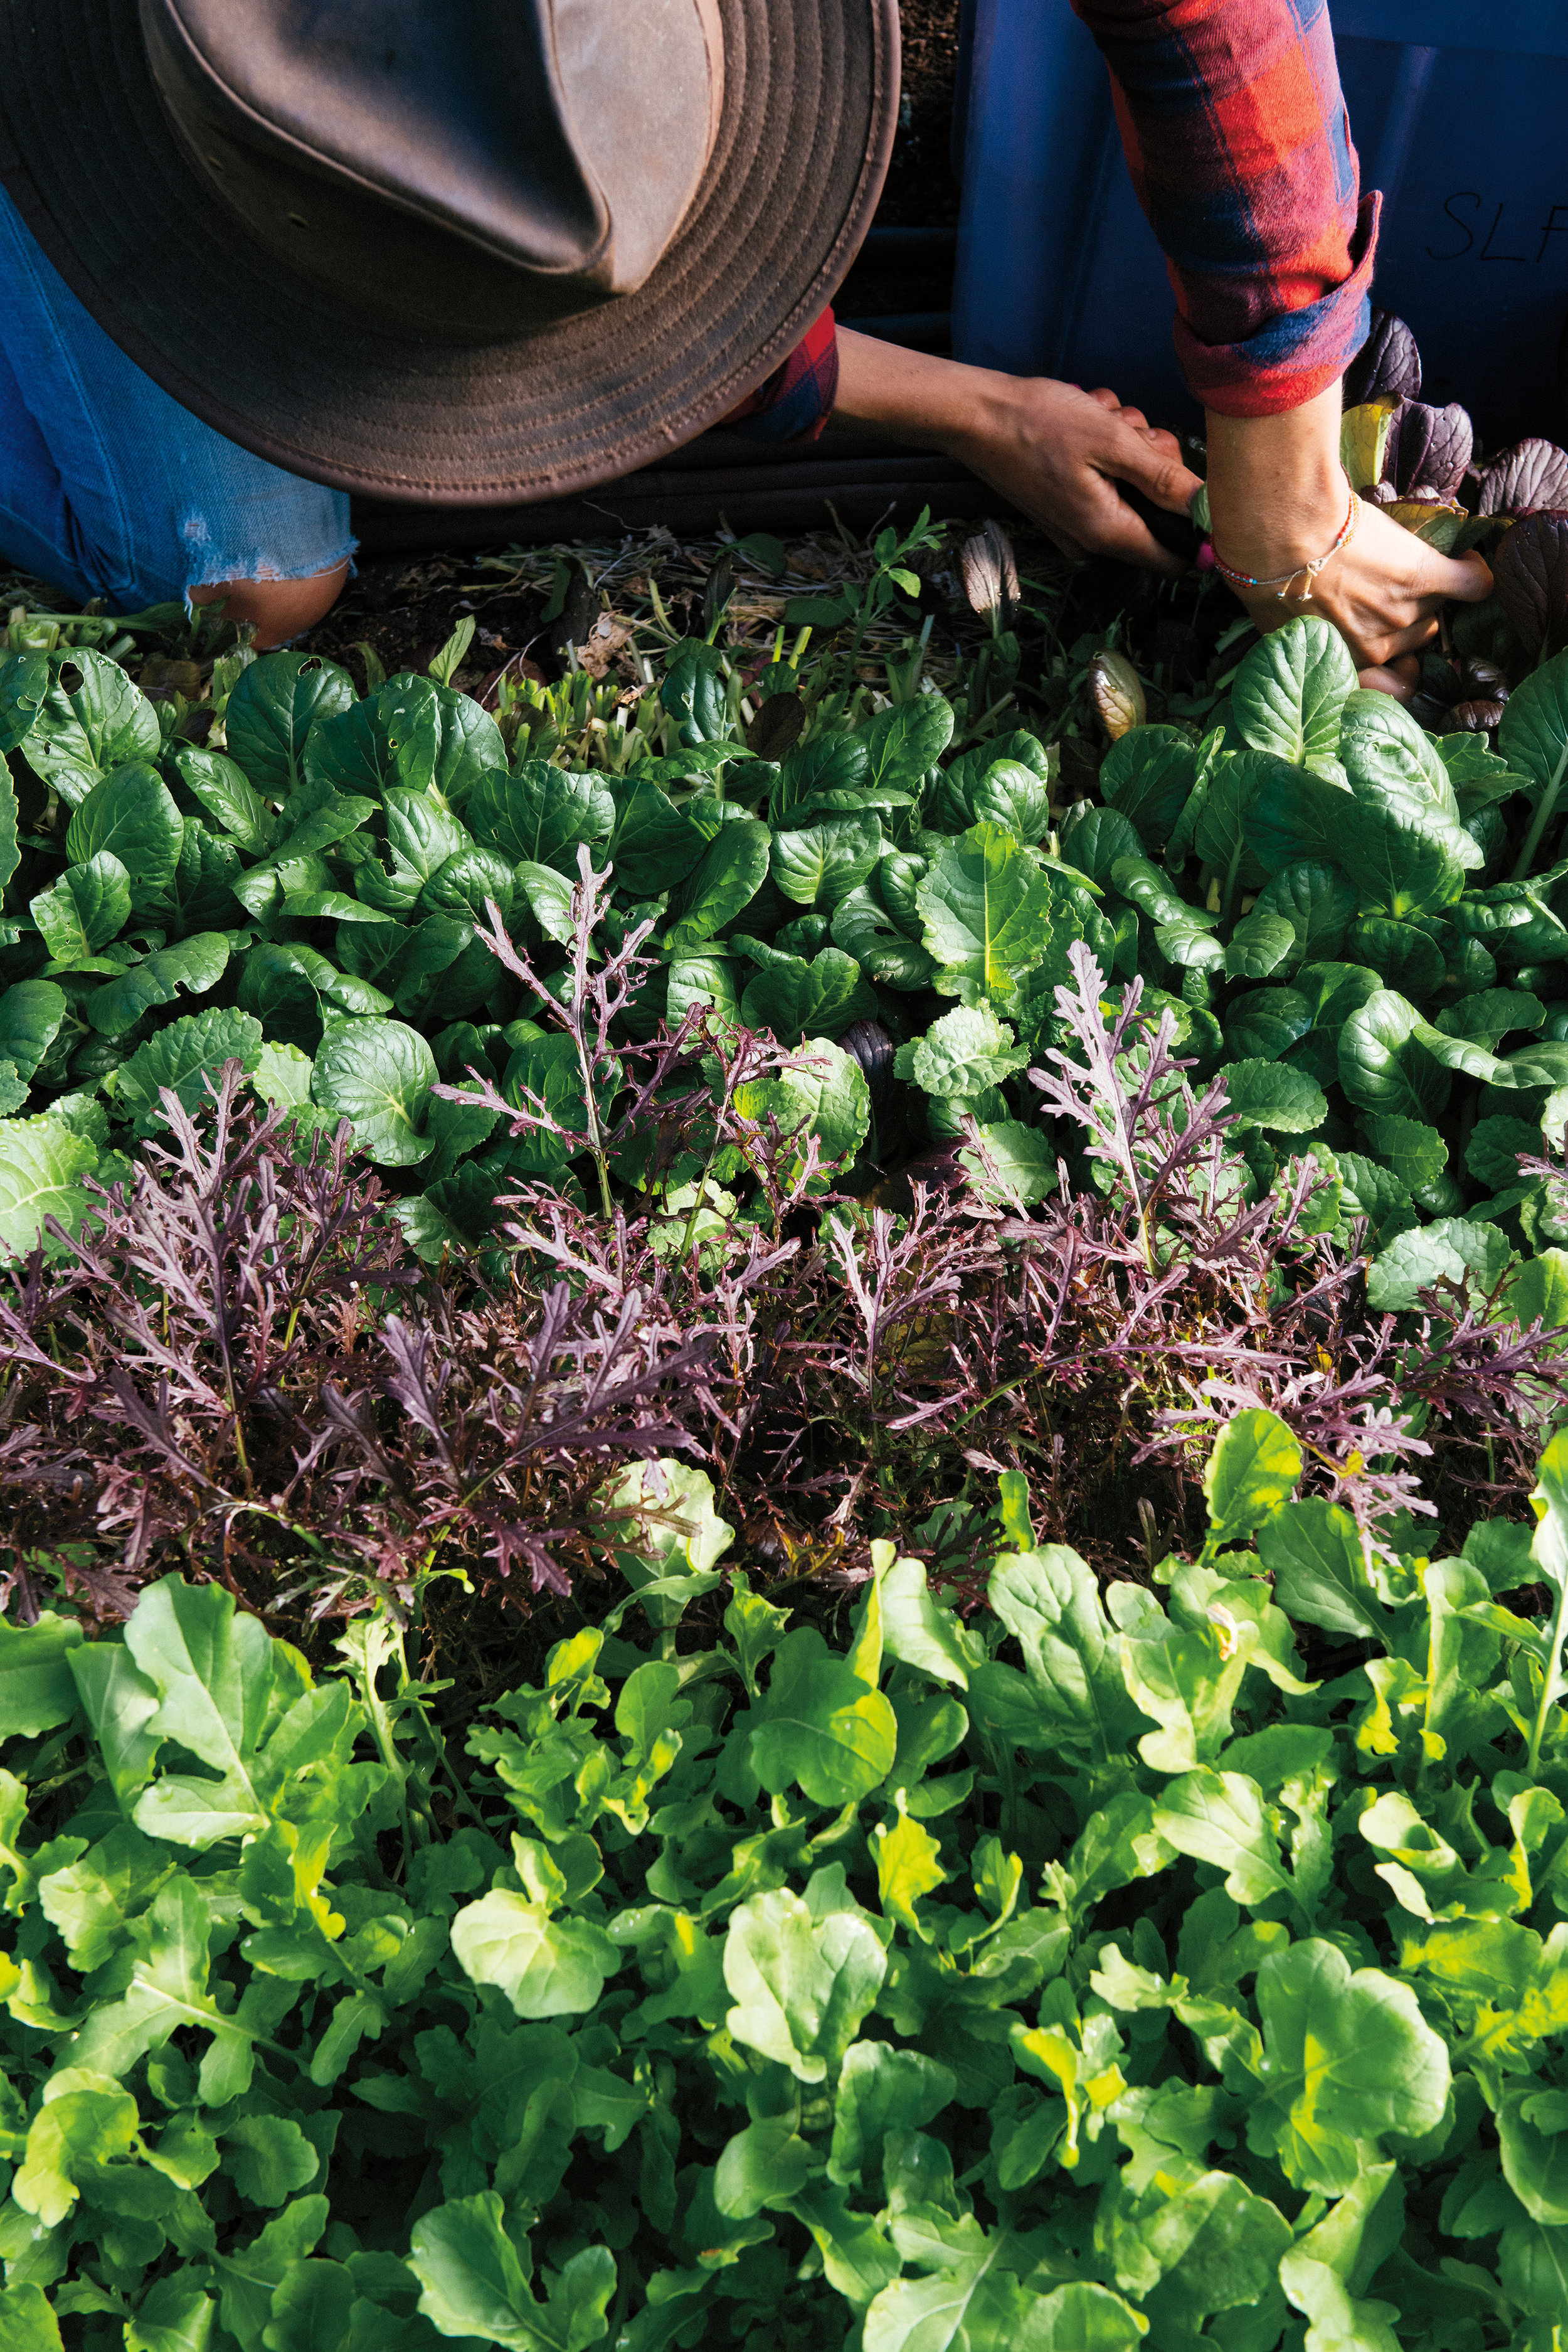 Greens are a large portion of sales at the farm stand.